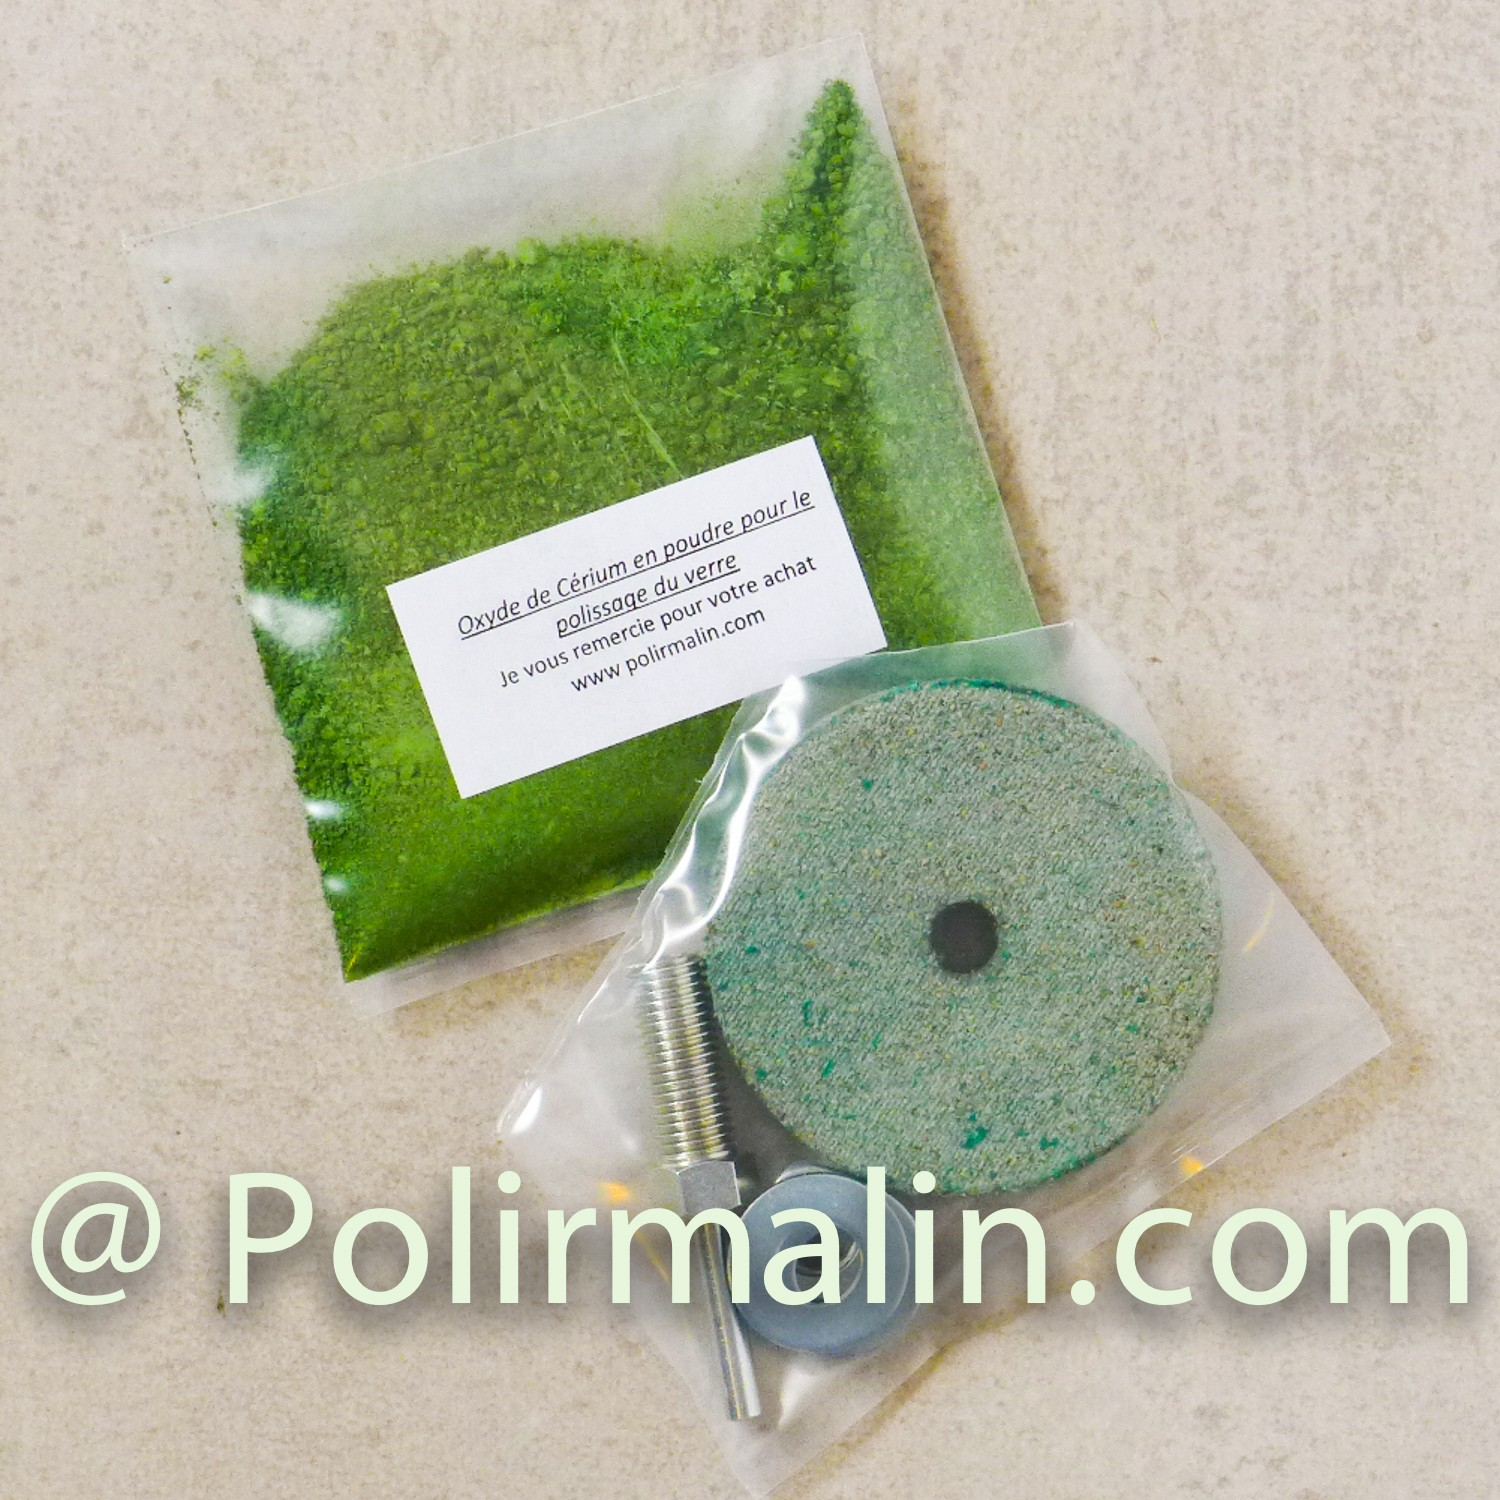 GLASS POLISHING REPAIR Kit www.polirmalin.com spécialiste du polissage, de l'ébavurage et du brossage